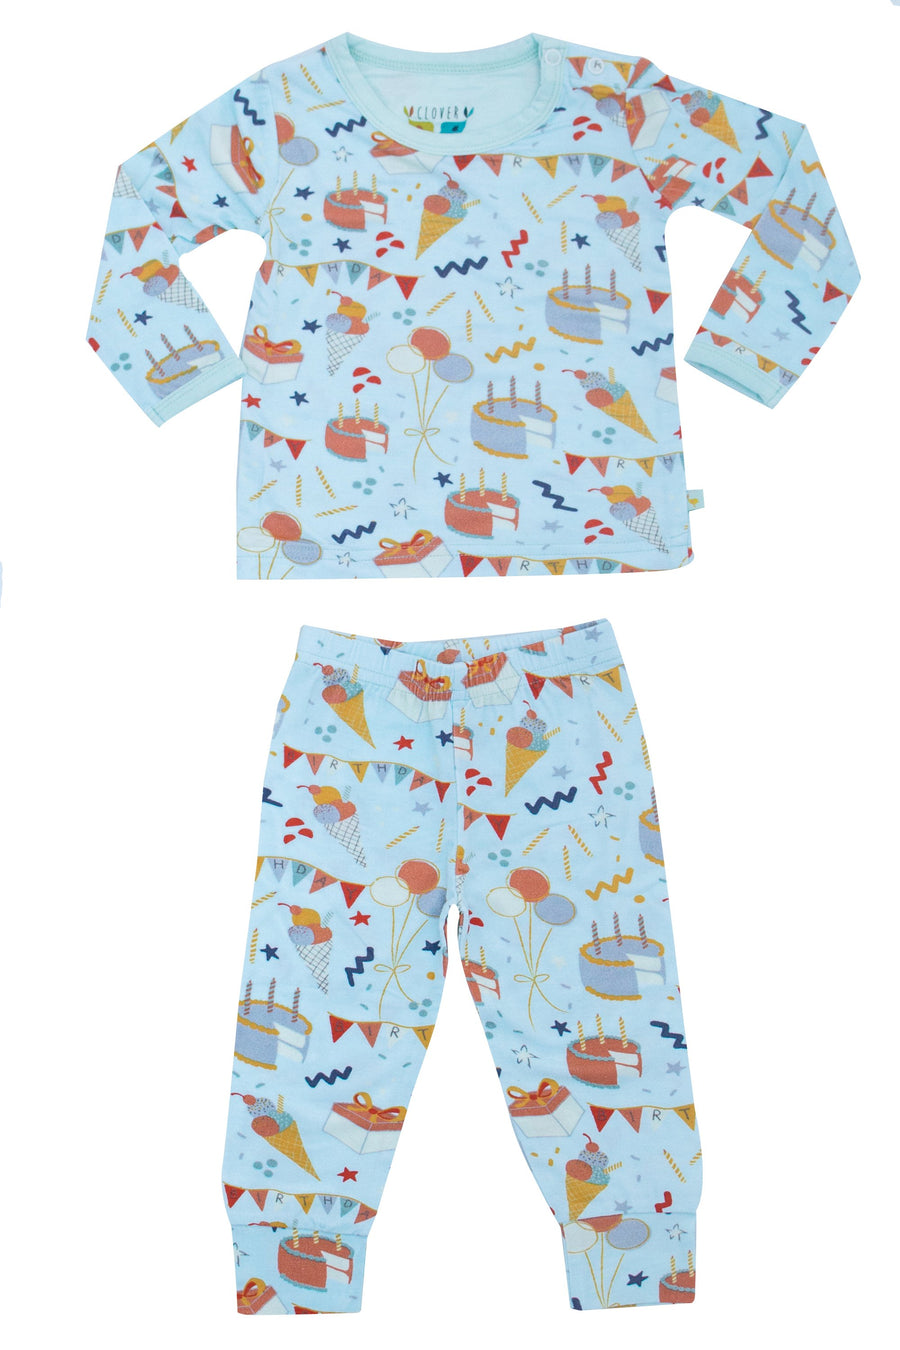 Clover Birthday Set/Onesie